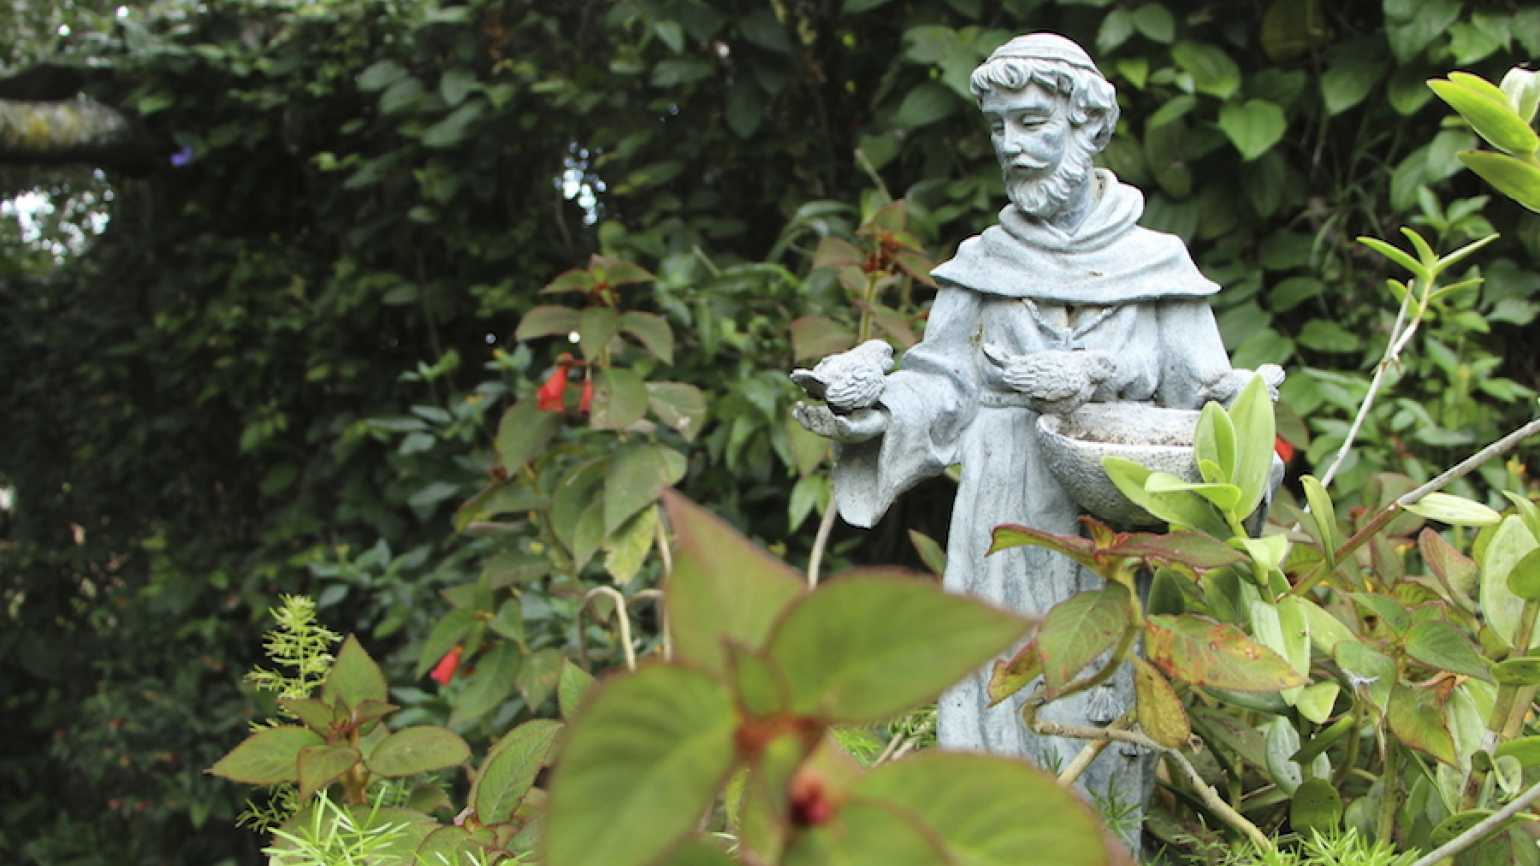 St. Francis of Assisi who lived a Jesus-like model of love.